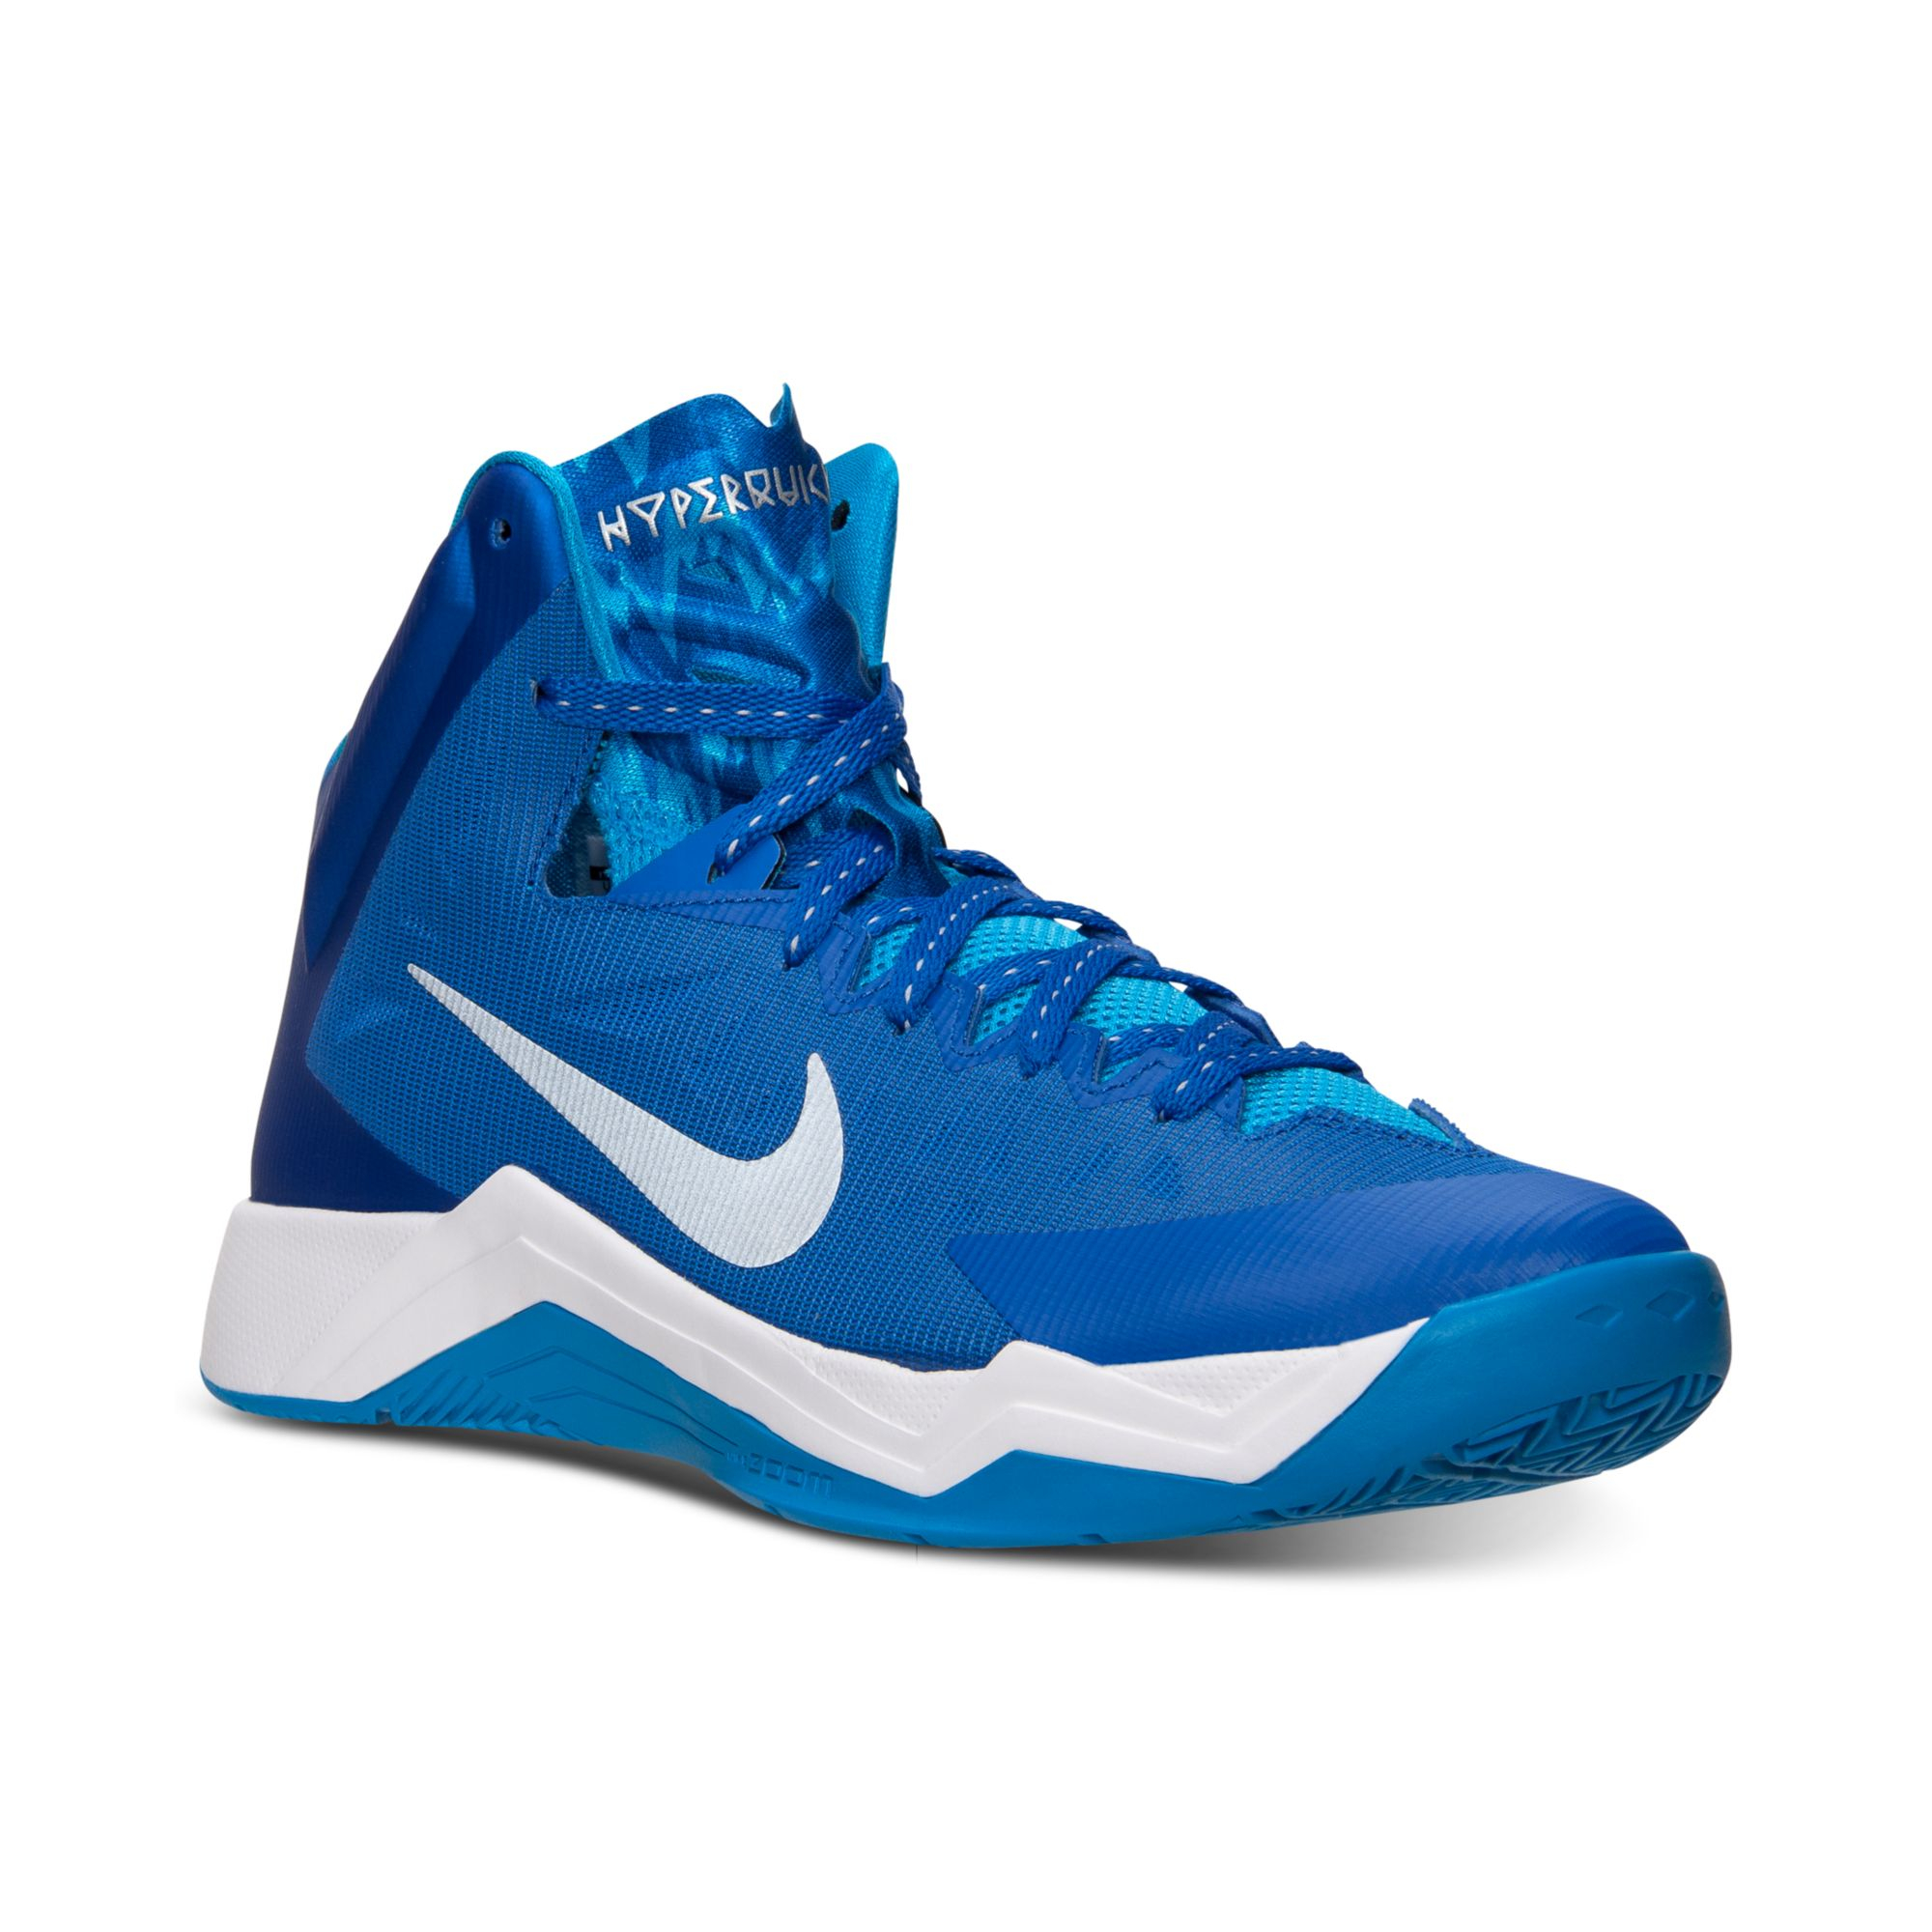 8447078dd908 Nike Mens Hyper Quickness Basketball Sneakers From Finish Line in ...